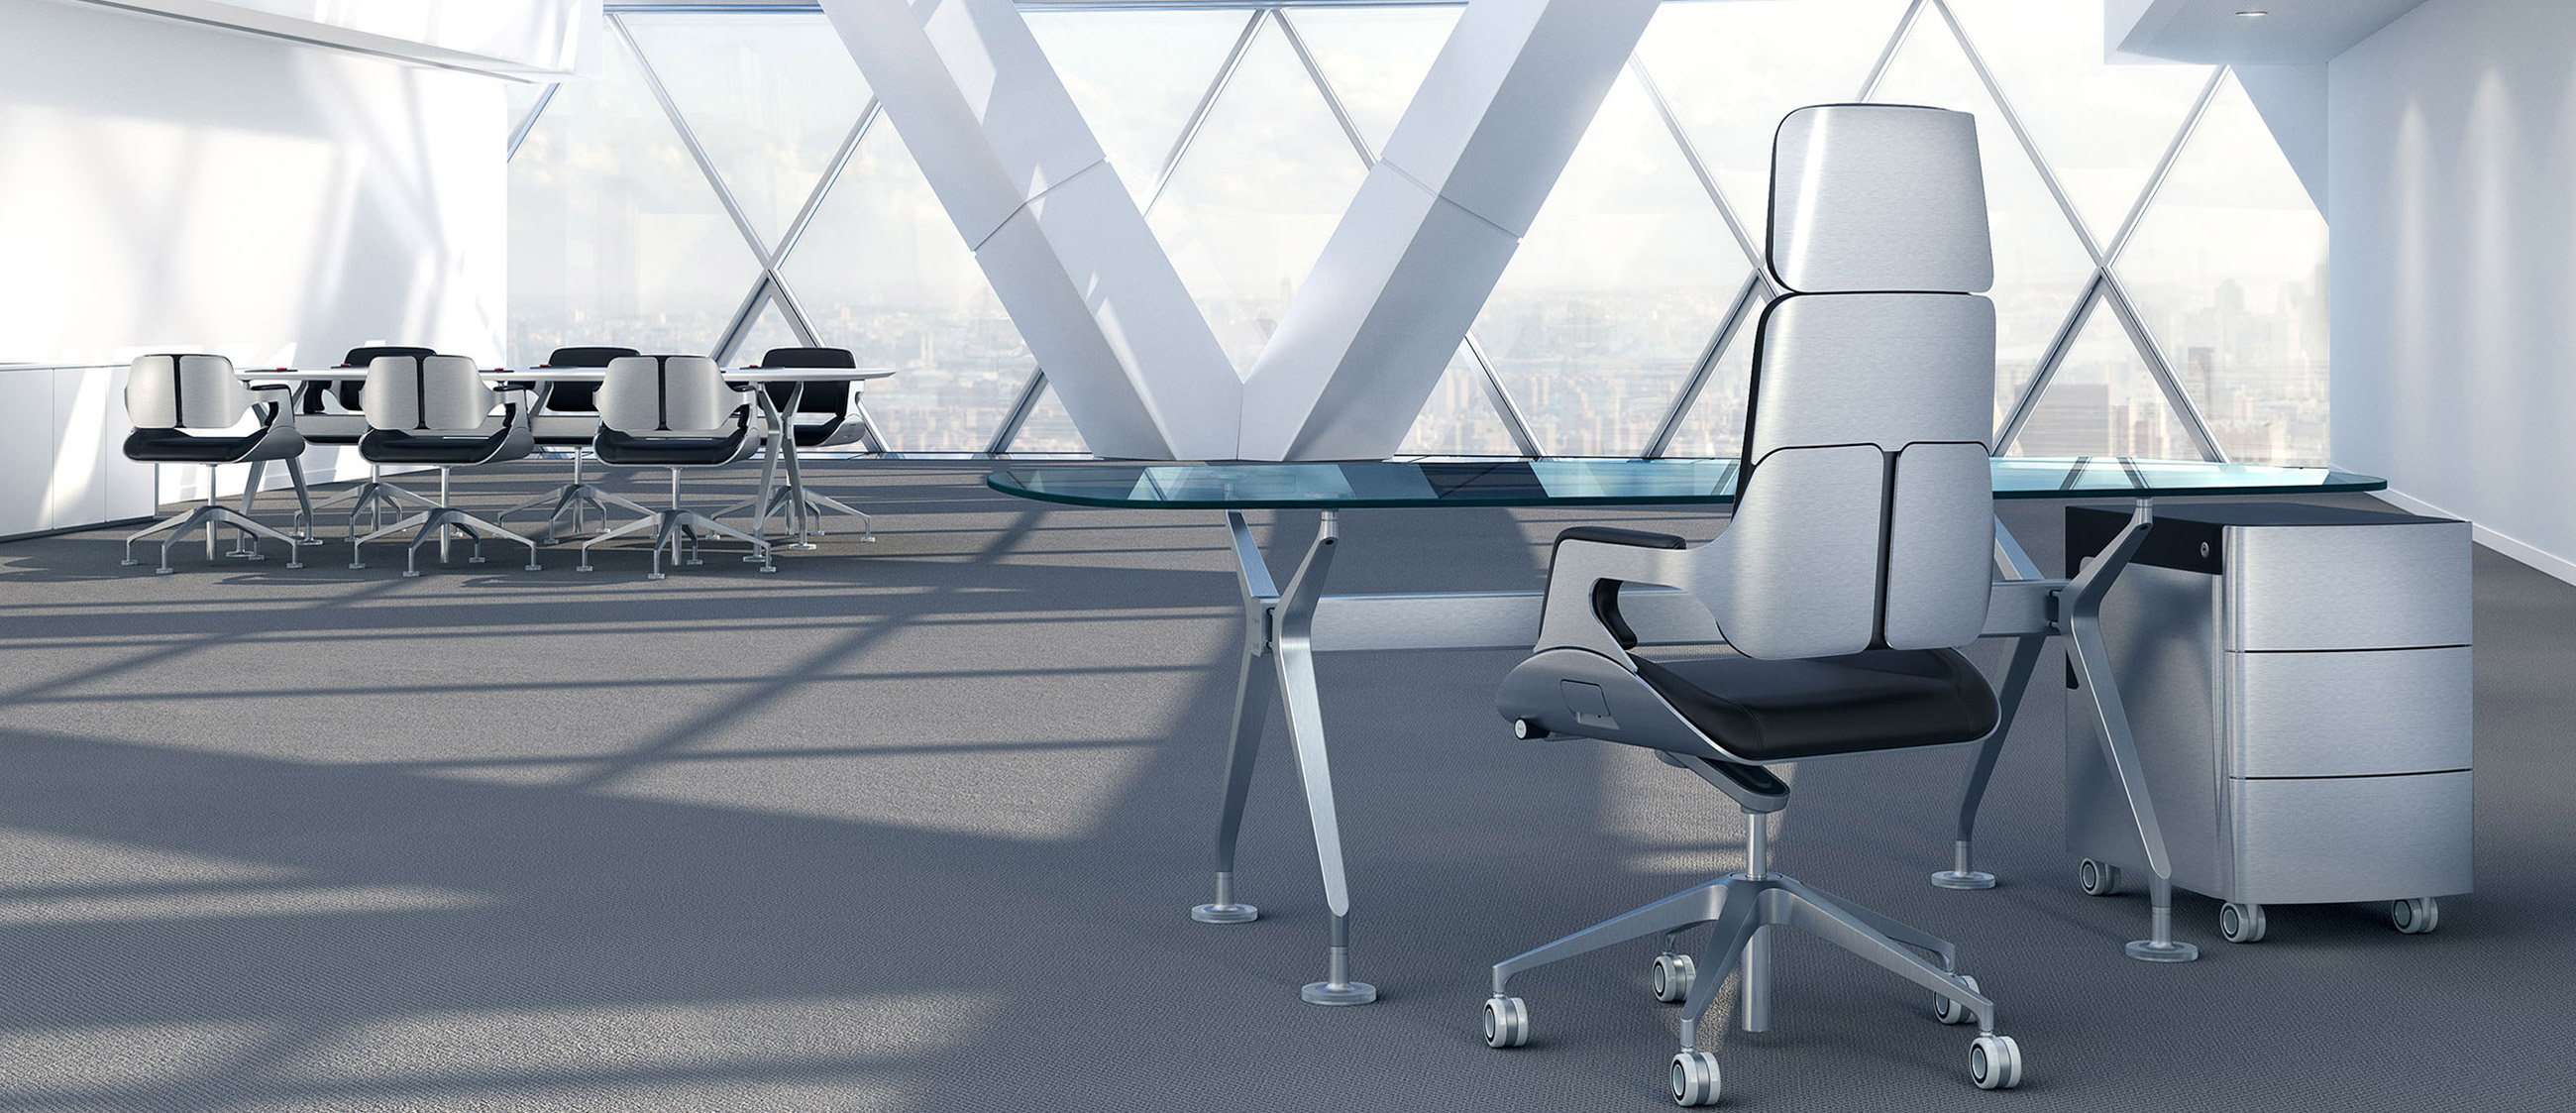 Interstuhl Silver Executive Highback Office Chair 362S Brushed Aluminium with Matching Silver Table In Situ